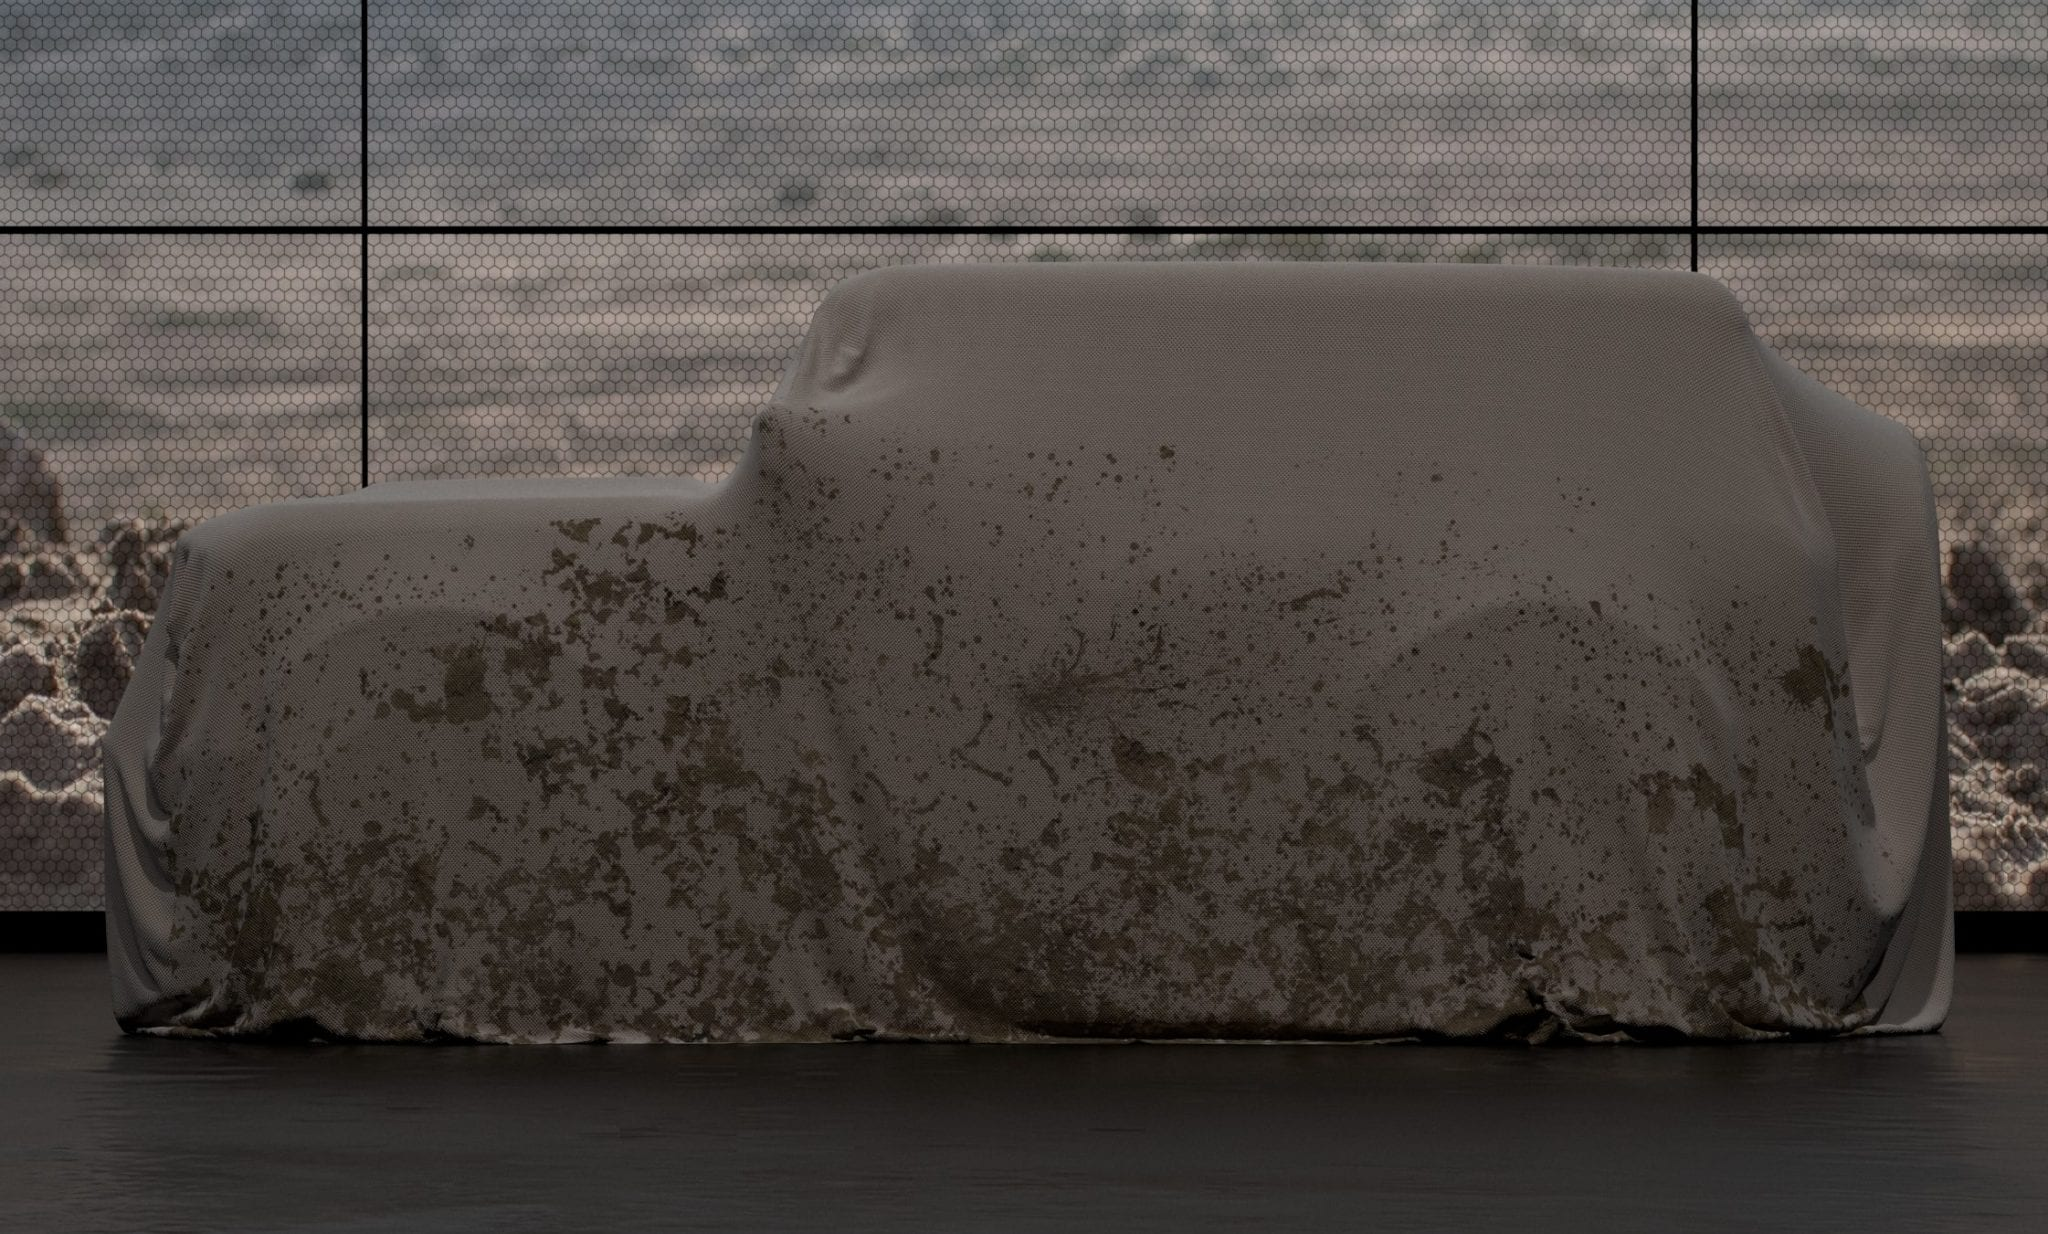 2019 Gt 500 >> 2020 Ford Bronco & GT500 Teaser Photos Released - The Lasco Press